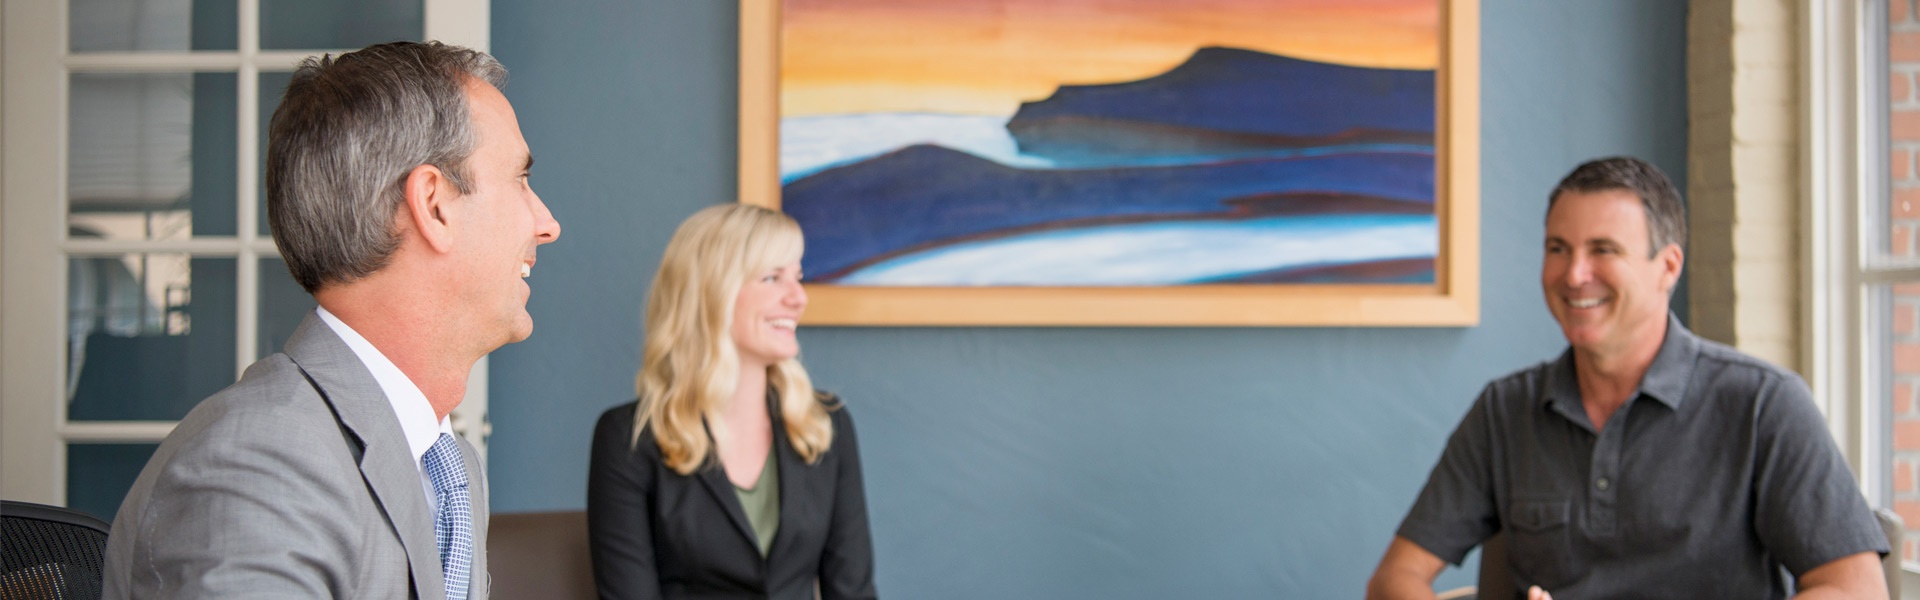 hire-personal-injury-lawyer